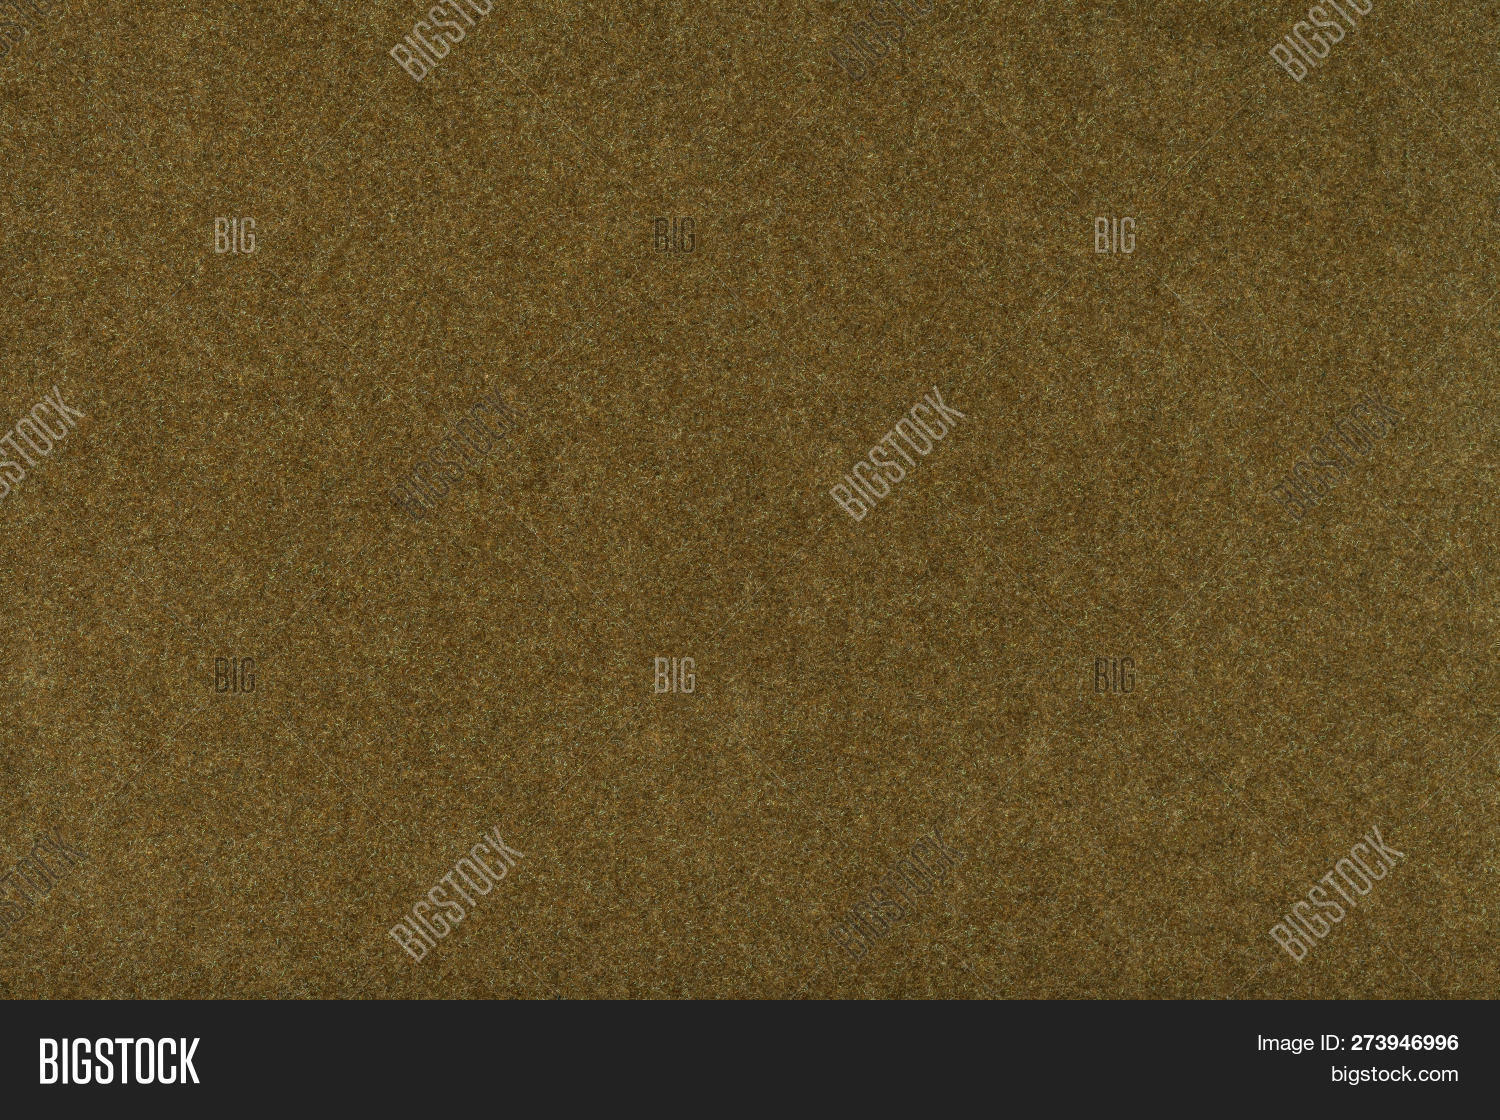 Brown Seamless Fabric Textures Dark Brown Matte Image Photo Free Trial Bigstock